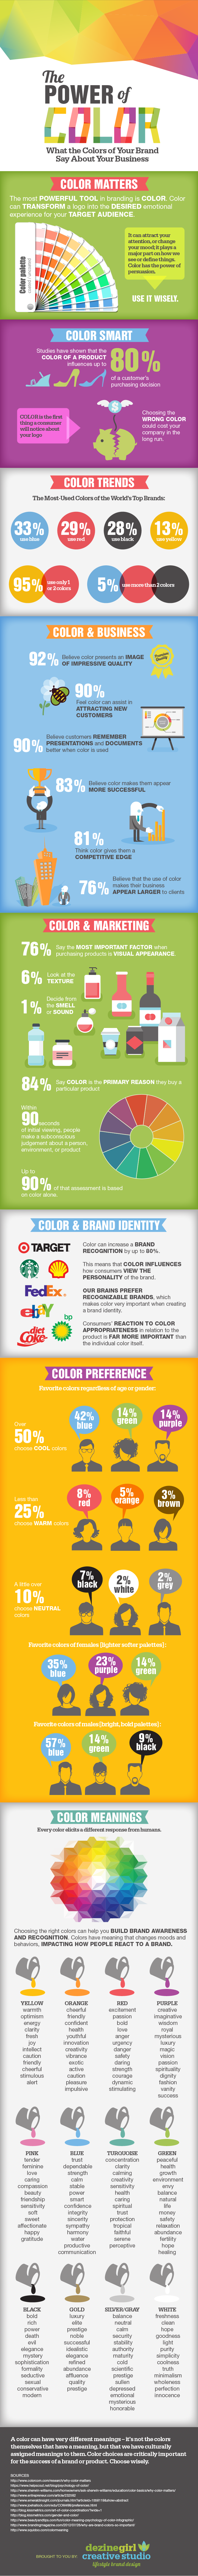 Why Color Matters in Brands